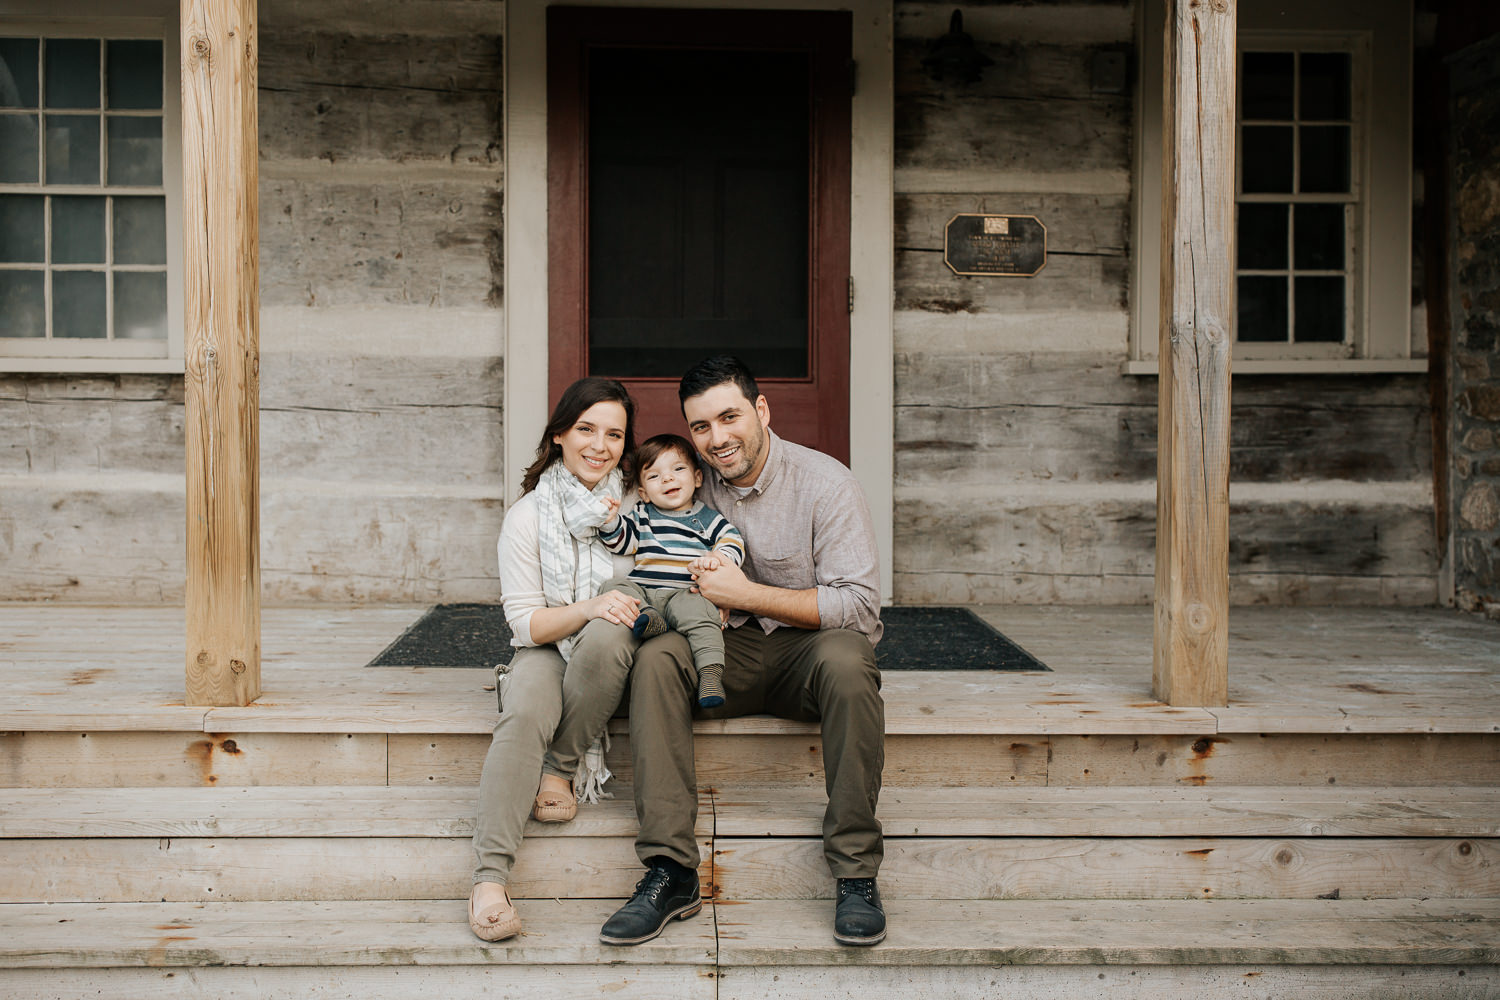 family of 3 sitting on front porch steps of historic log cabin, son on dad's lap, mom next to them, smiling at camera - Stouffville OutdoorPhotography